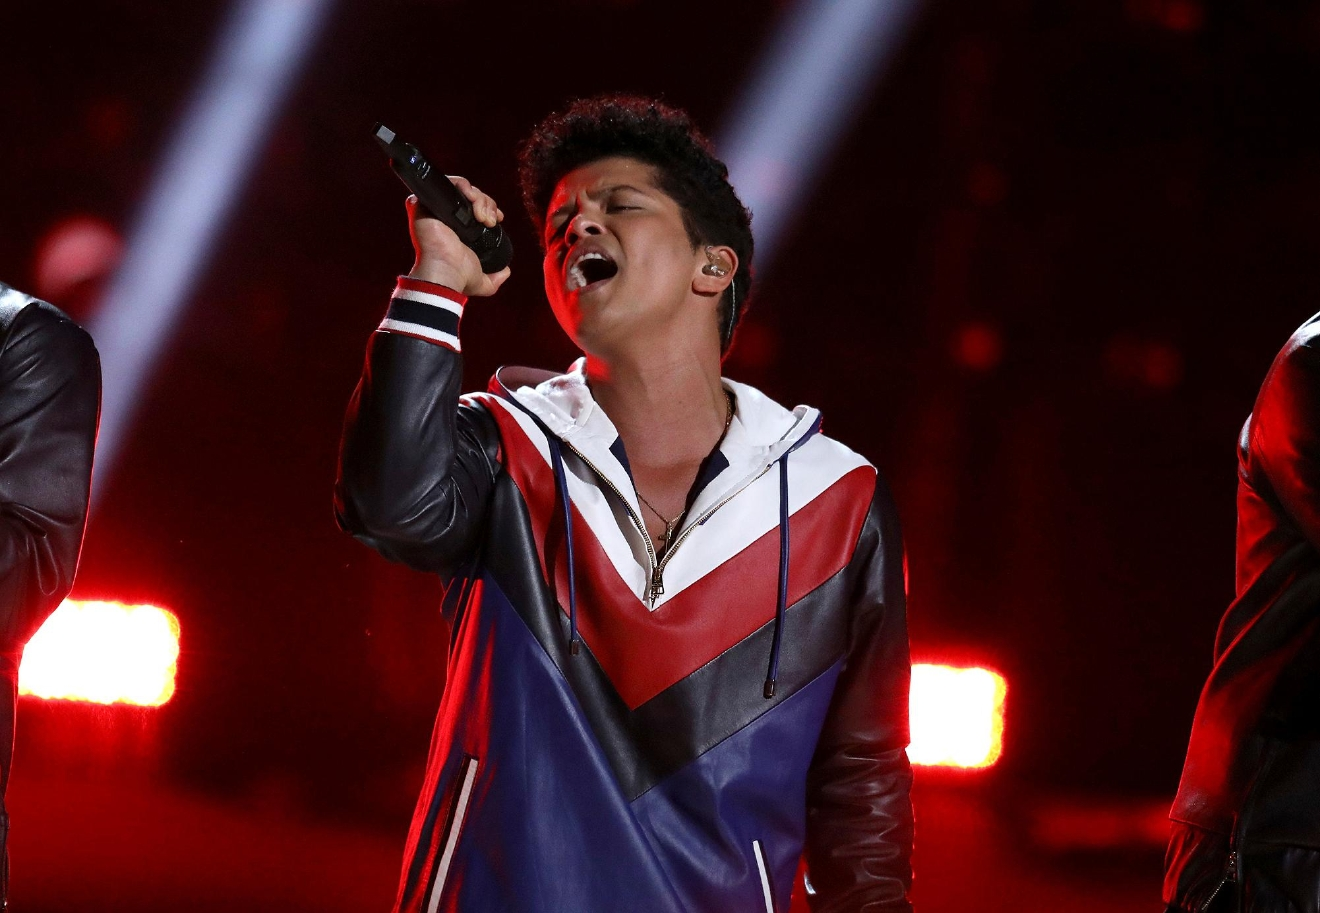 FILE - This Feb. 12, 2017 file photo shows Bruno Mars performing at the 59th annual Grammy Awards in Los Angeles. (Photo by Matt Sayles/Invision/AP, File)